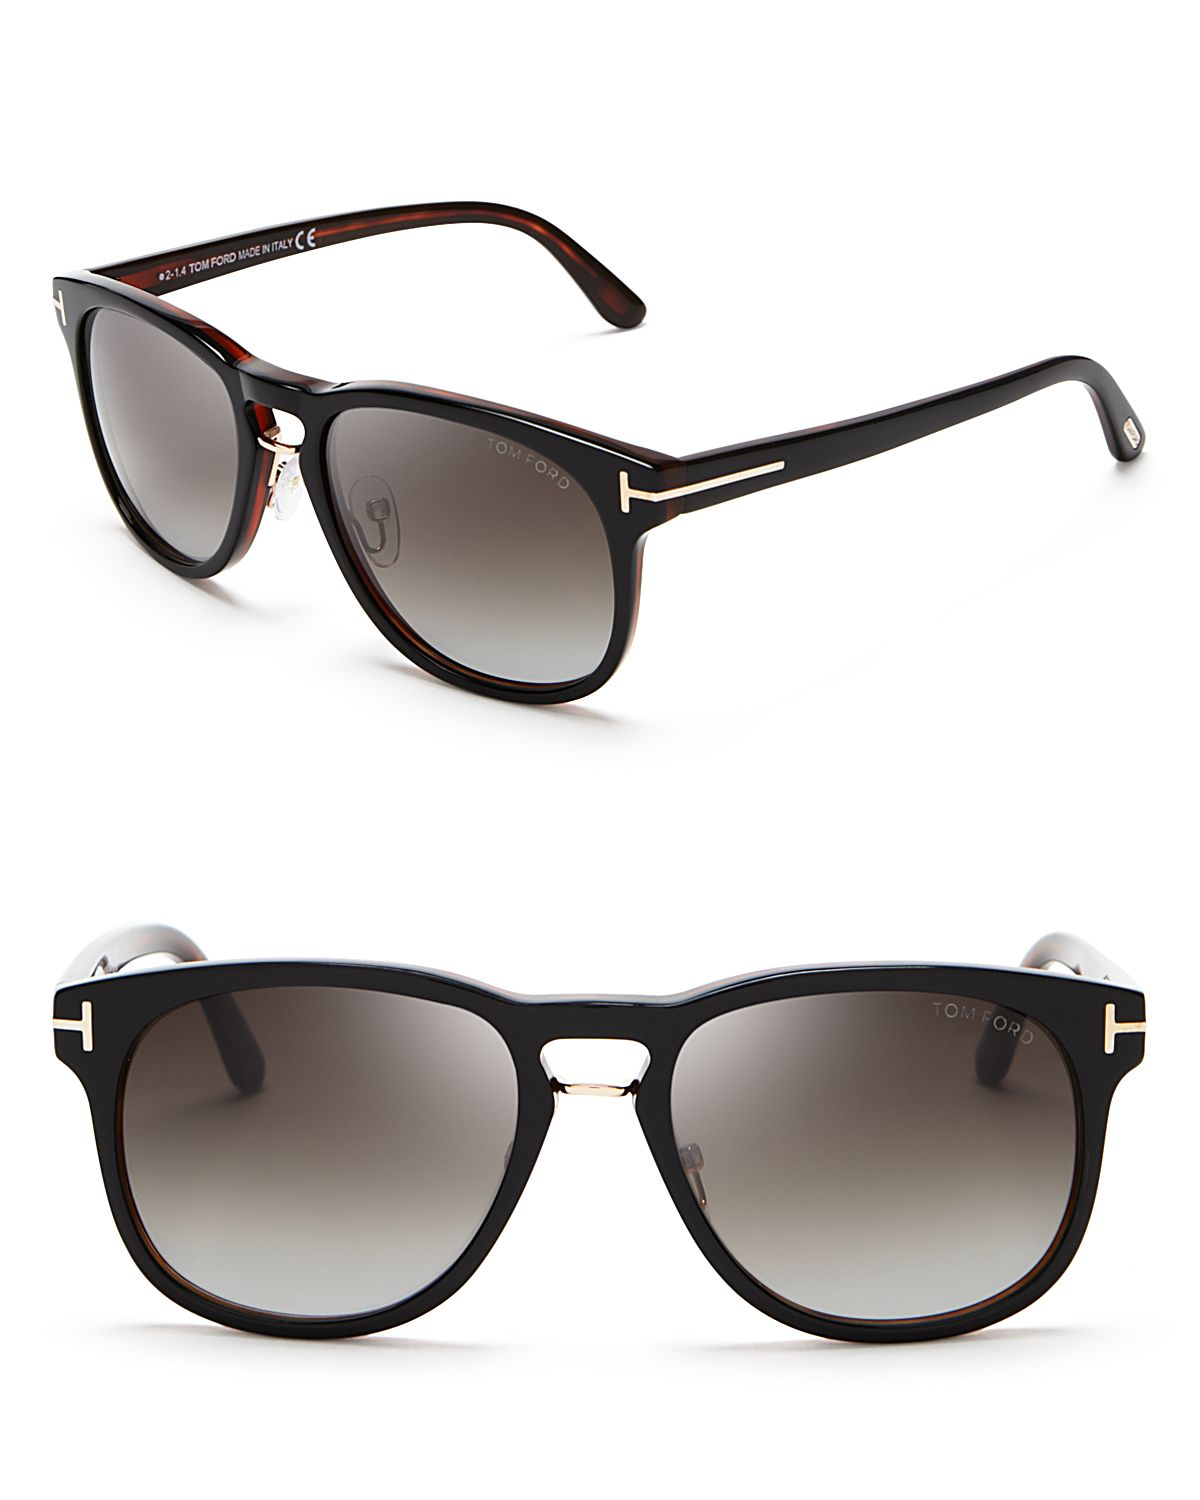 977396a8972d Gallery. Previously sold at  Bloomingdale s · Men s Wayfarer Sunglasses ...